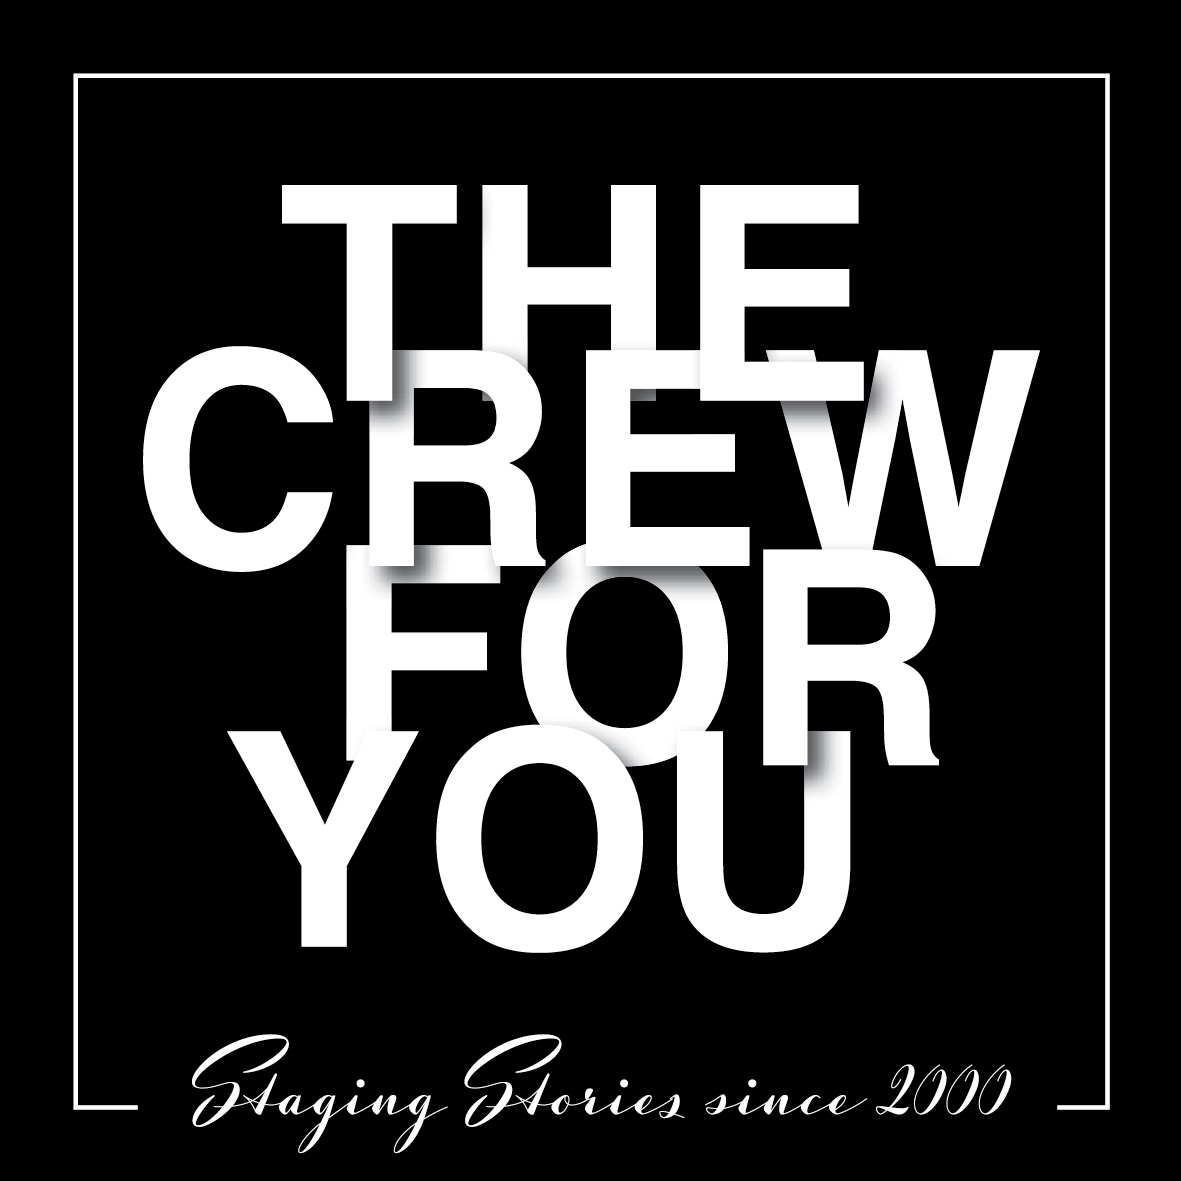 THE CREW FOR YOU